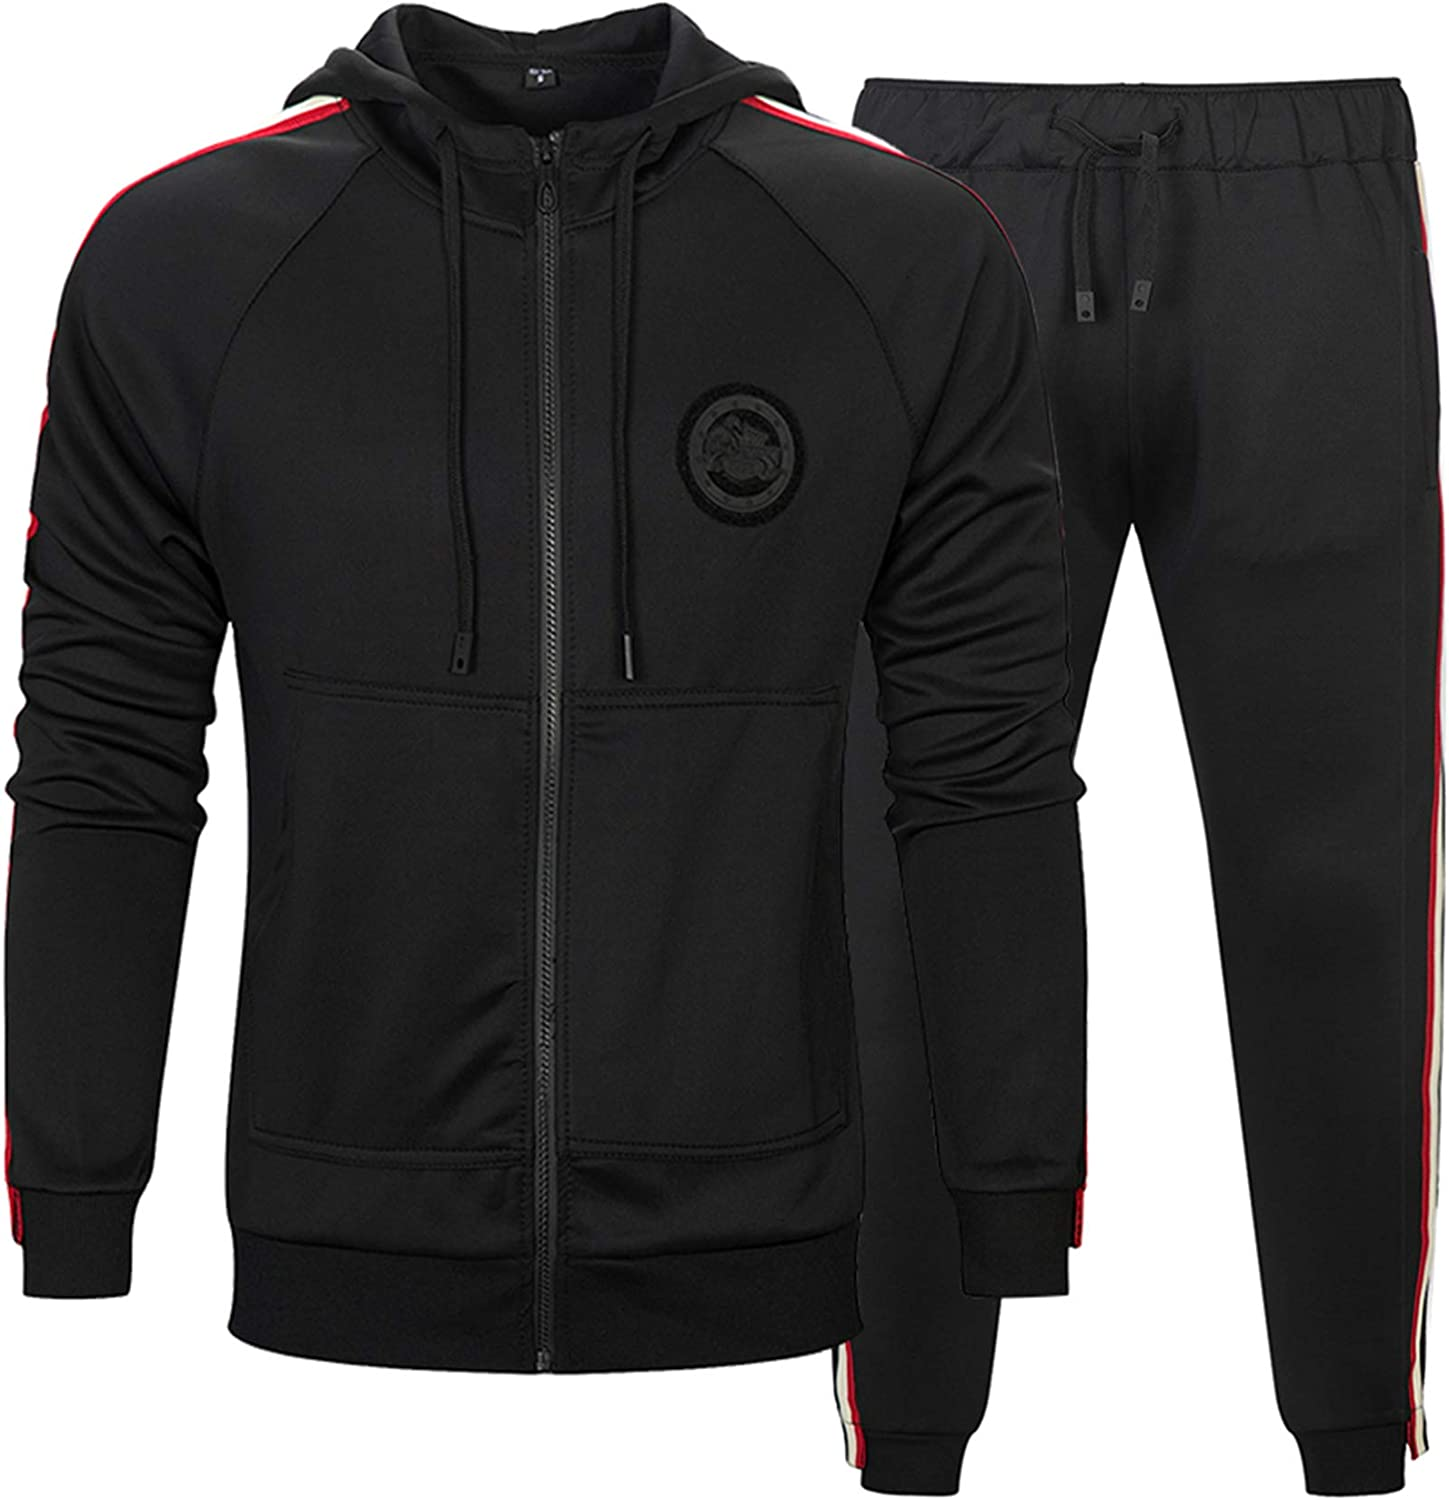 MACHLAB Mens Athletic Suit Sports Set Jogging Sweatsuits Full Zip Track Suits Casual Tracksuits